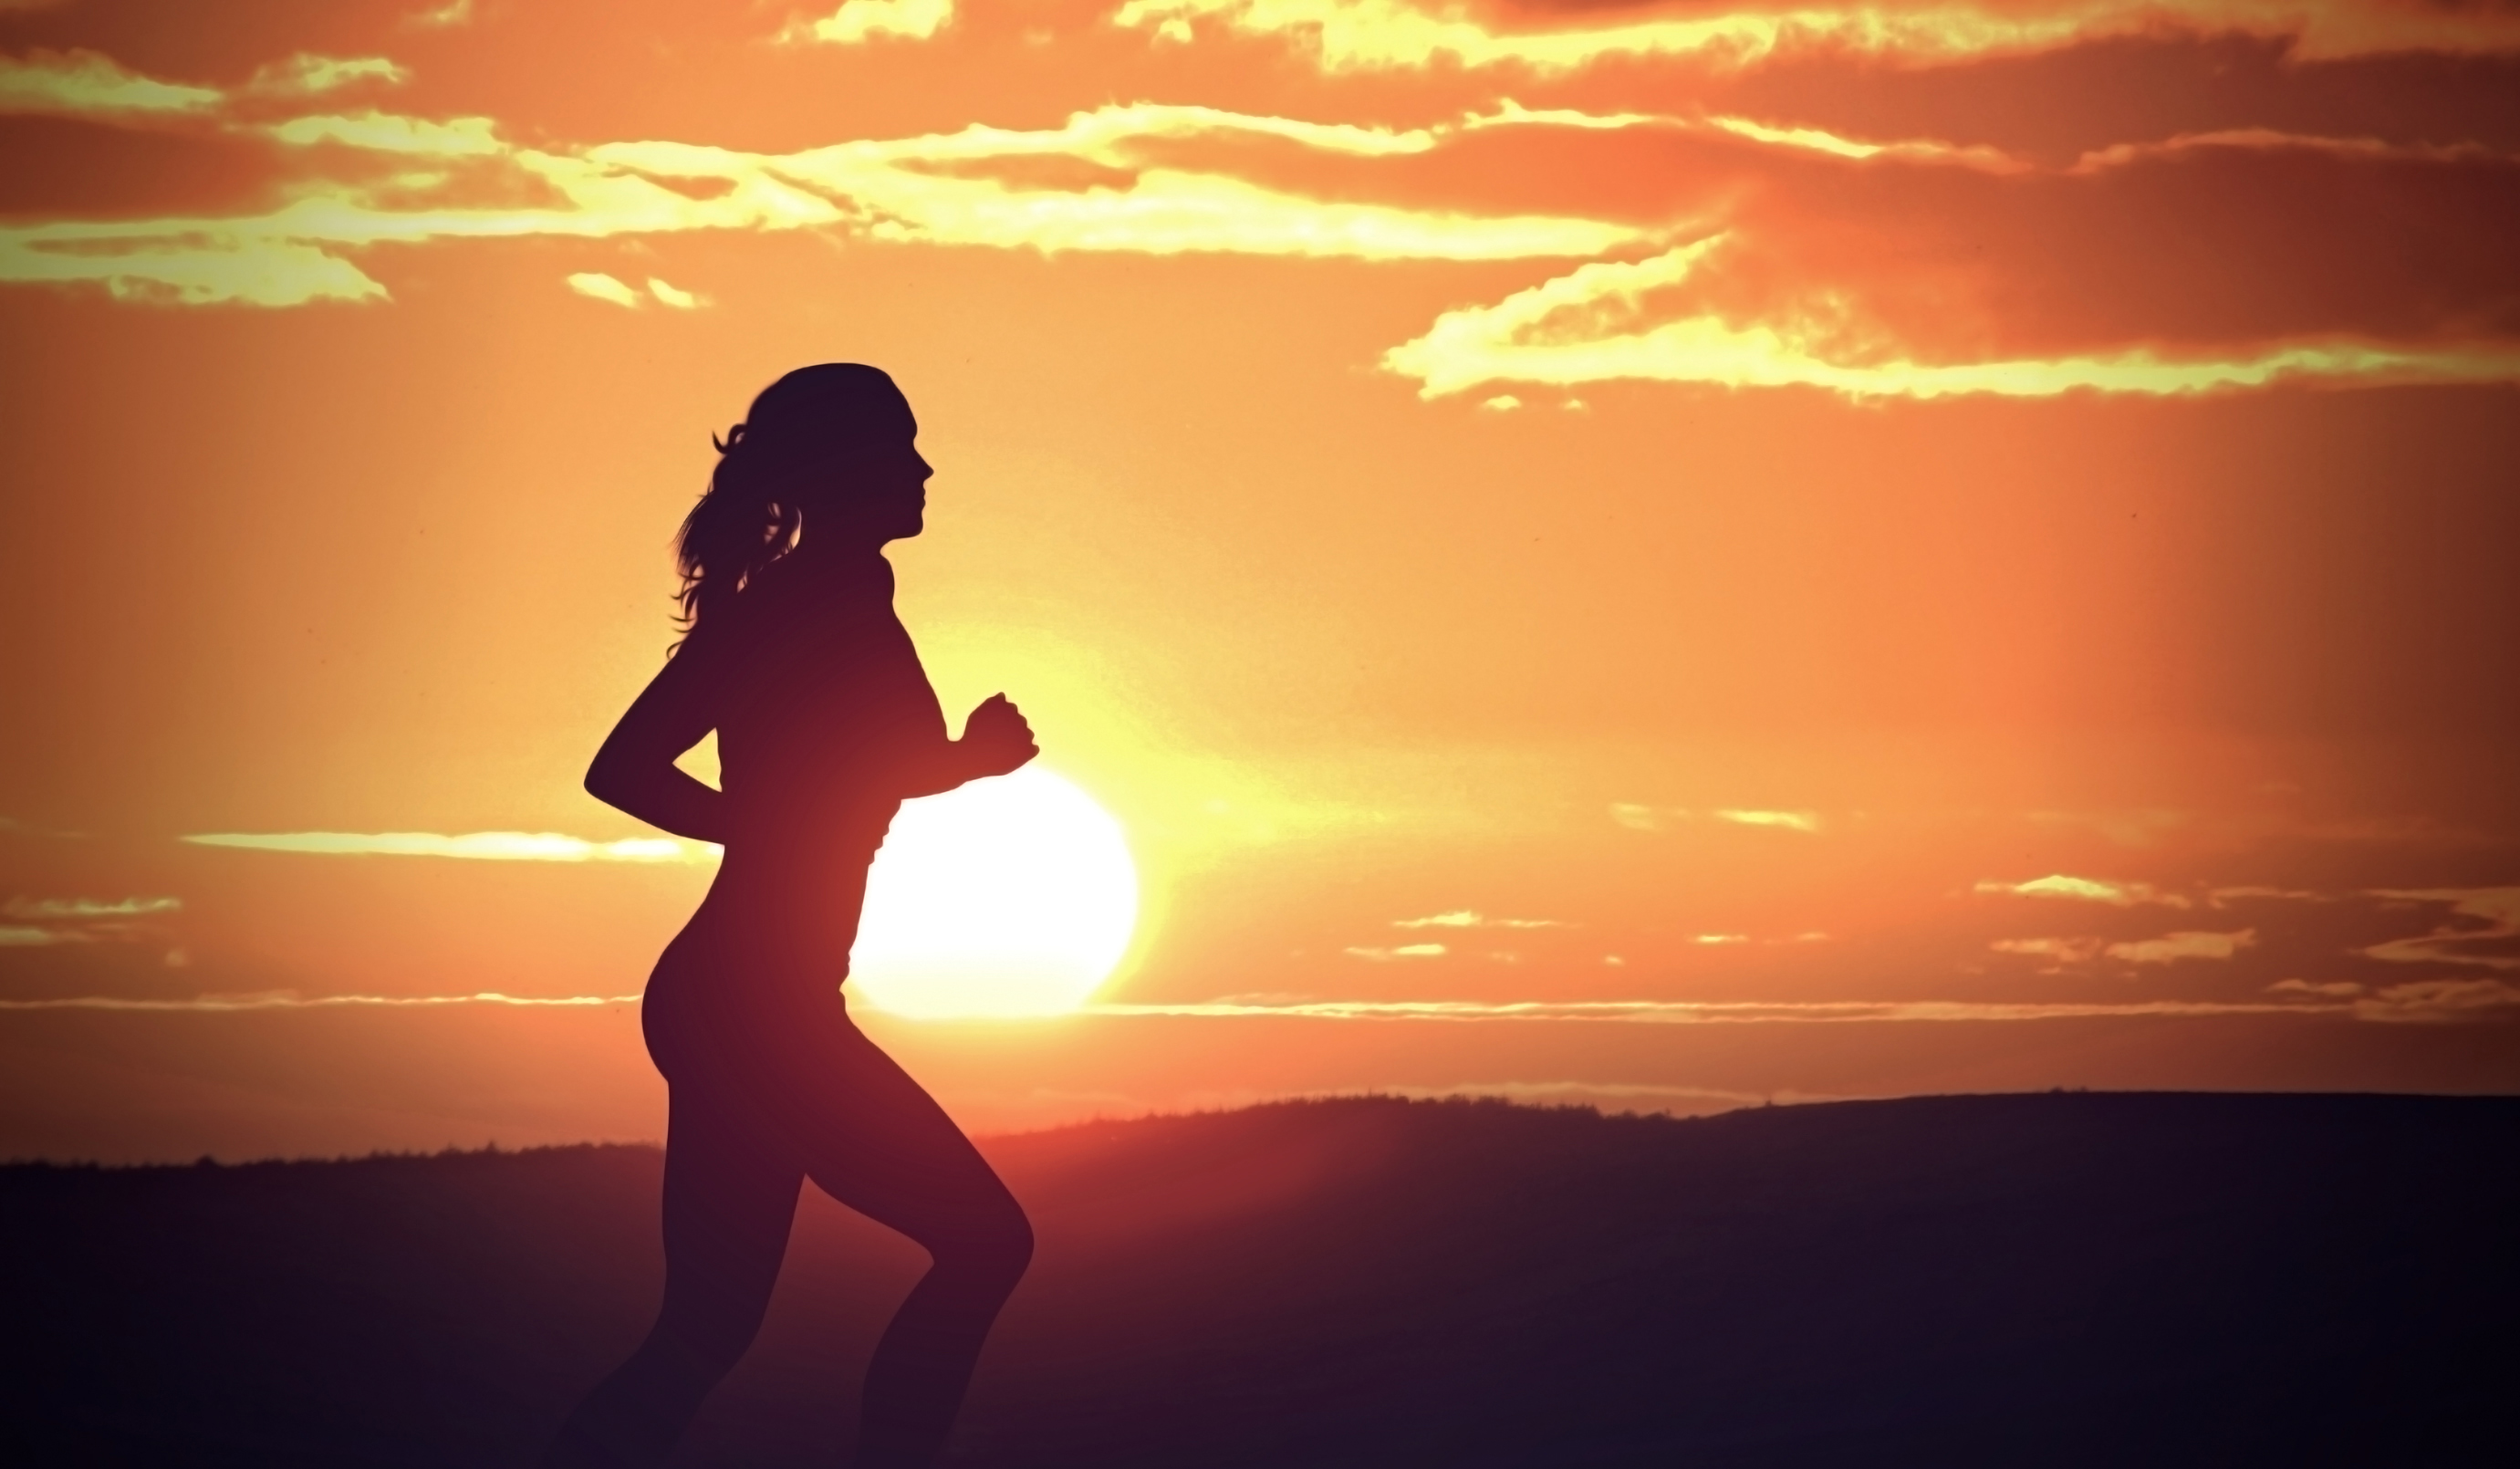 Young Woman Jogging at Sunset, Run, Routine, Relax, Runner, HQ Photo